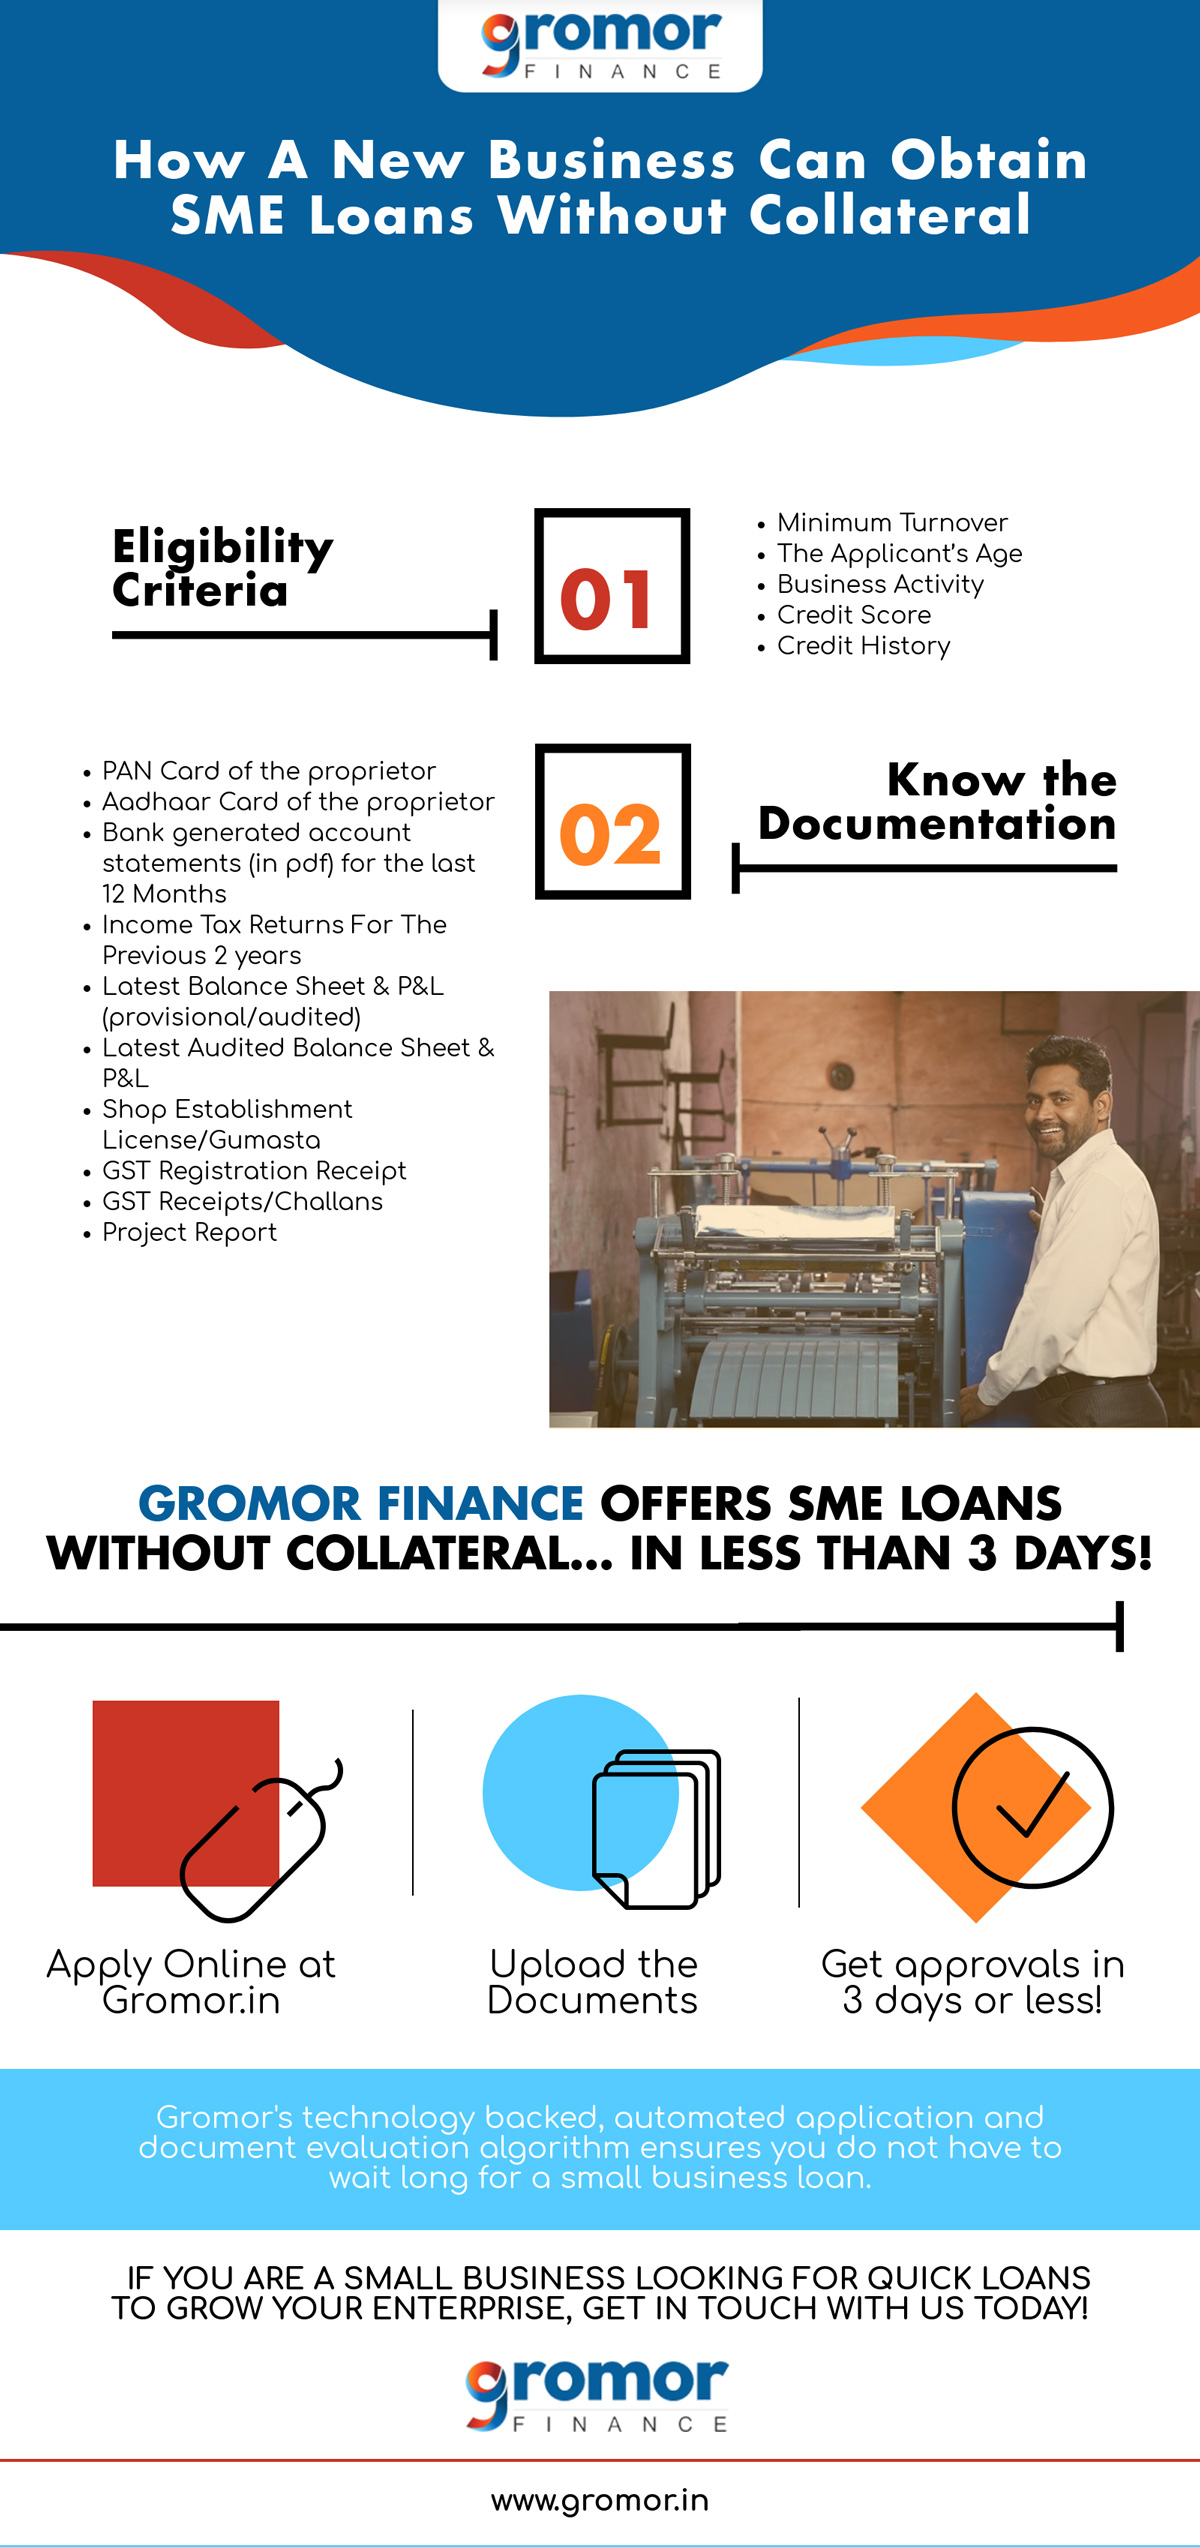 How-A-New-Business-Can-Obtain-SME-Loans-Without-Collateral